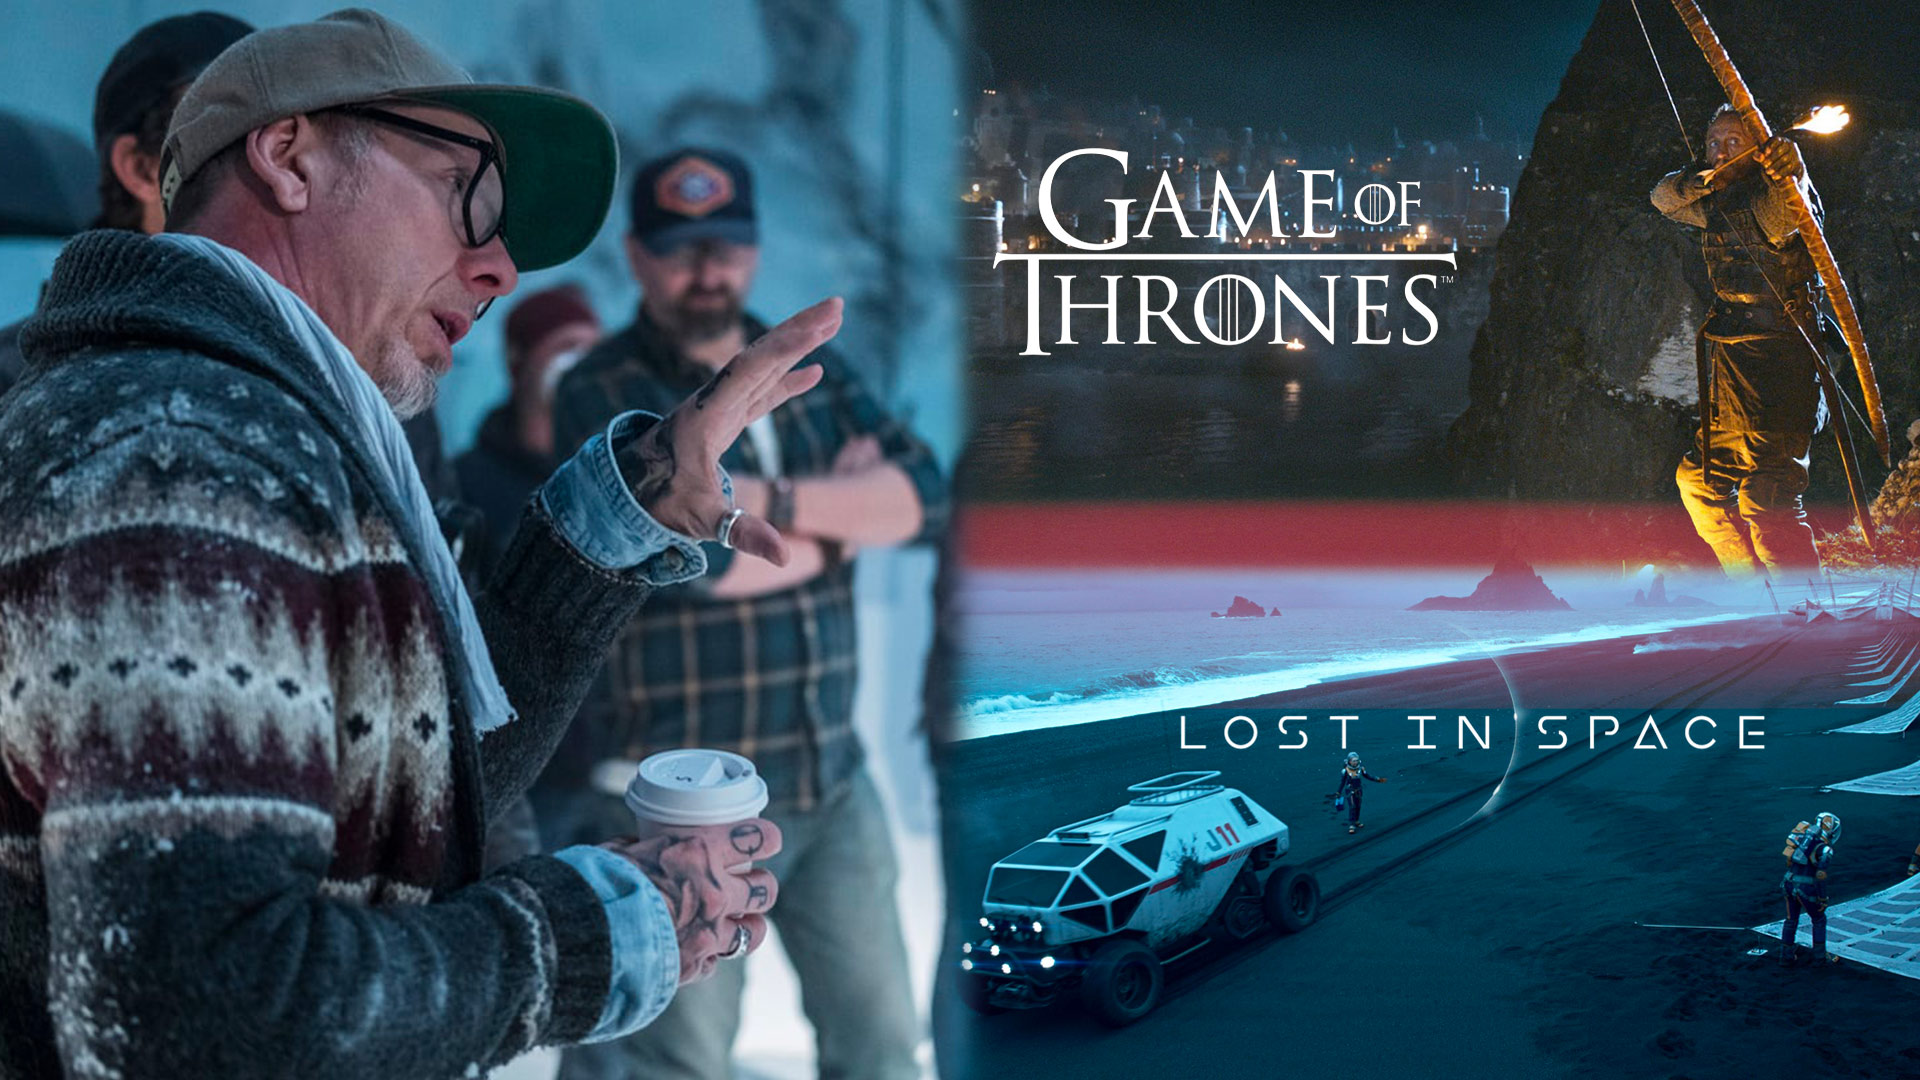 Entrevista con Sam McCurdy BSC, parte 1- Director de Fotografía de Game of Thrones y Lost in Space